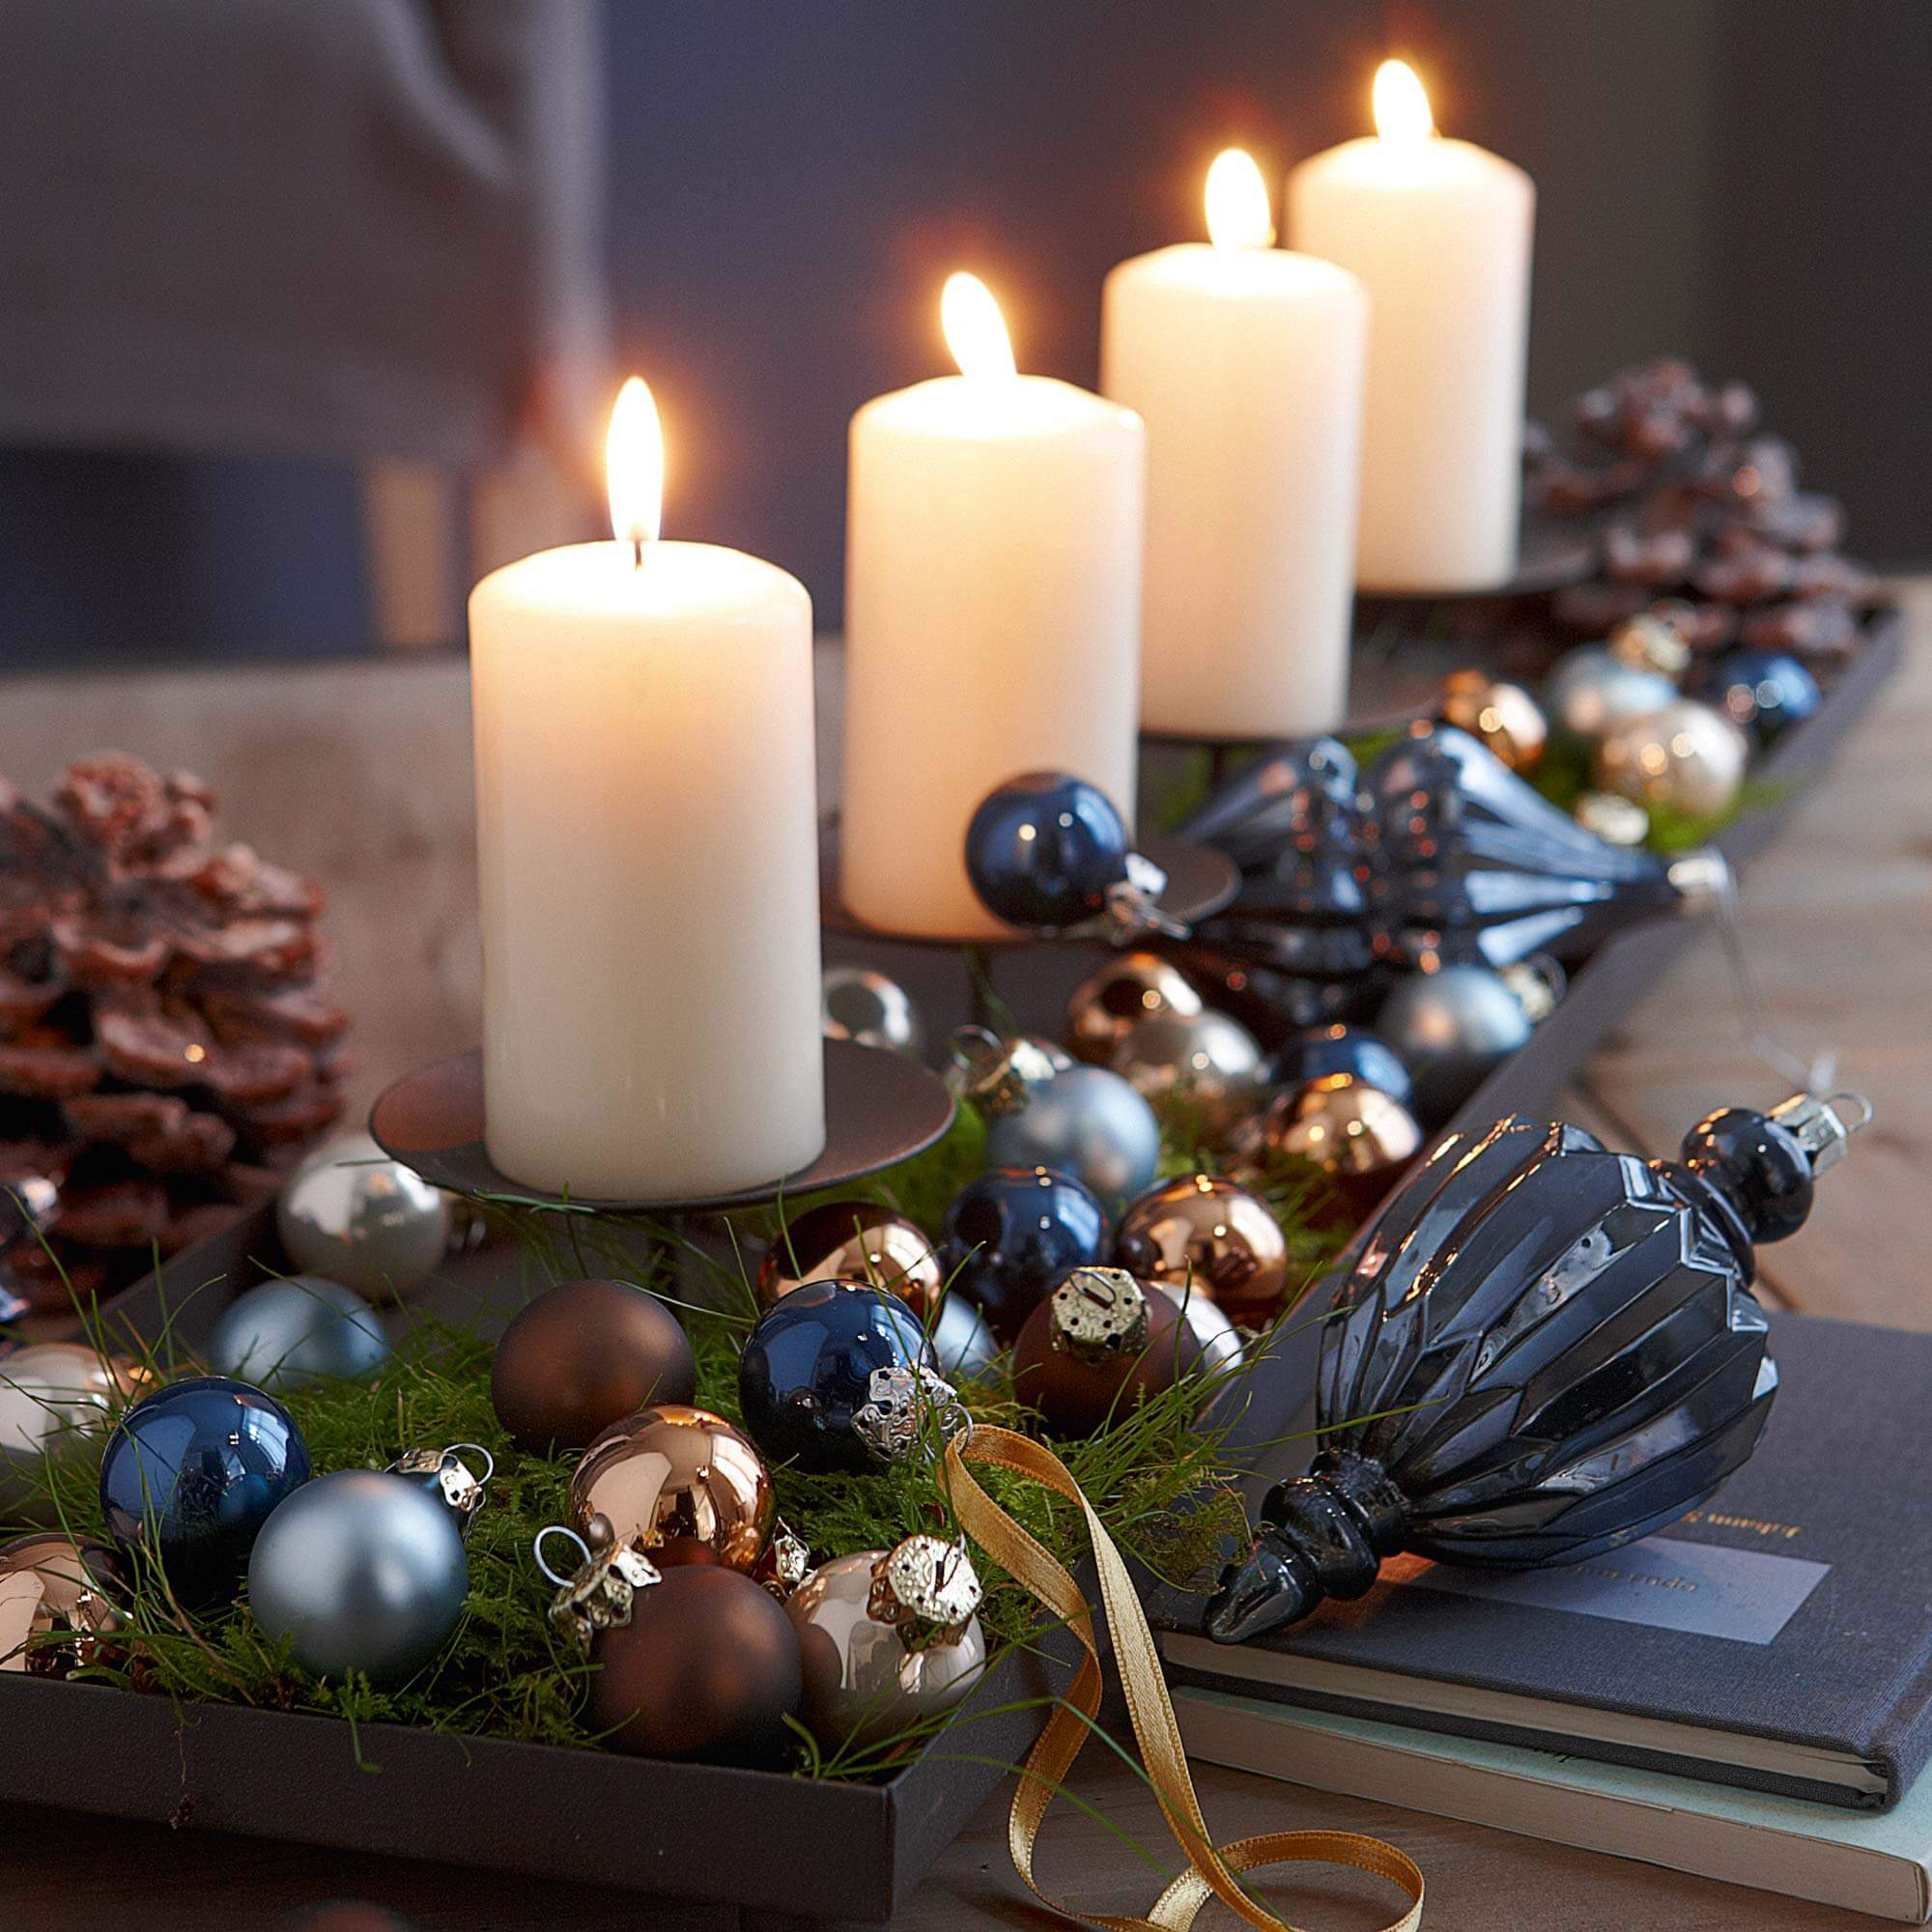 Christmas decorations for small spaces